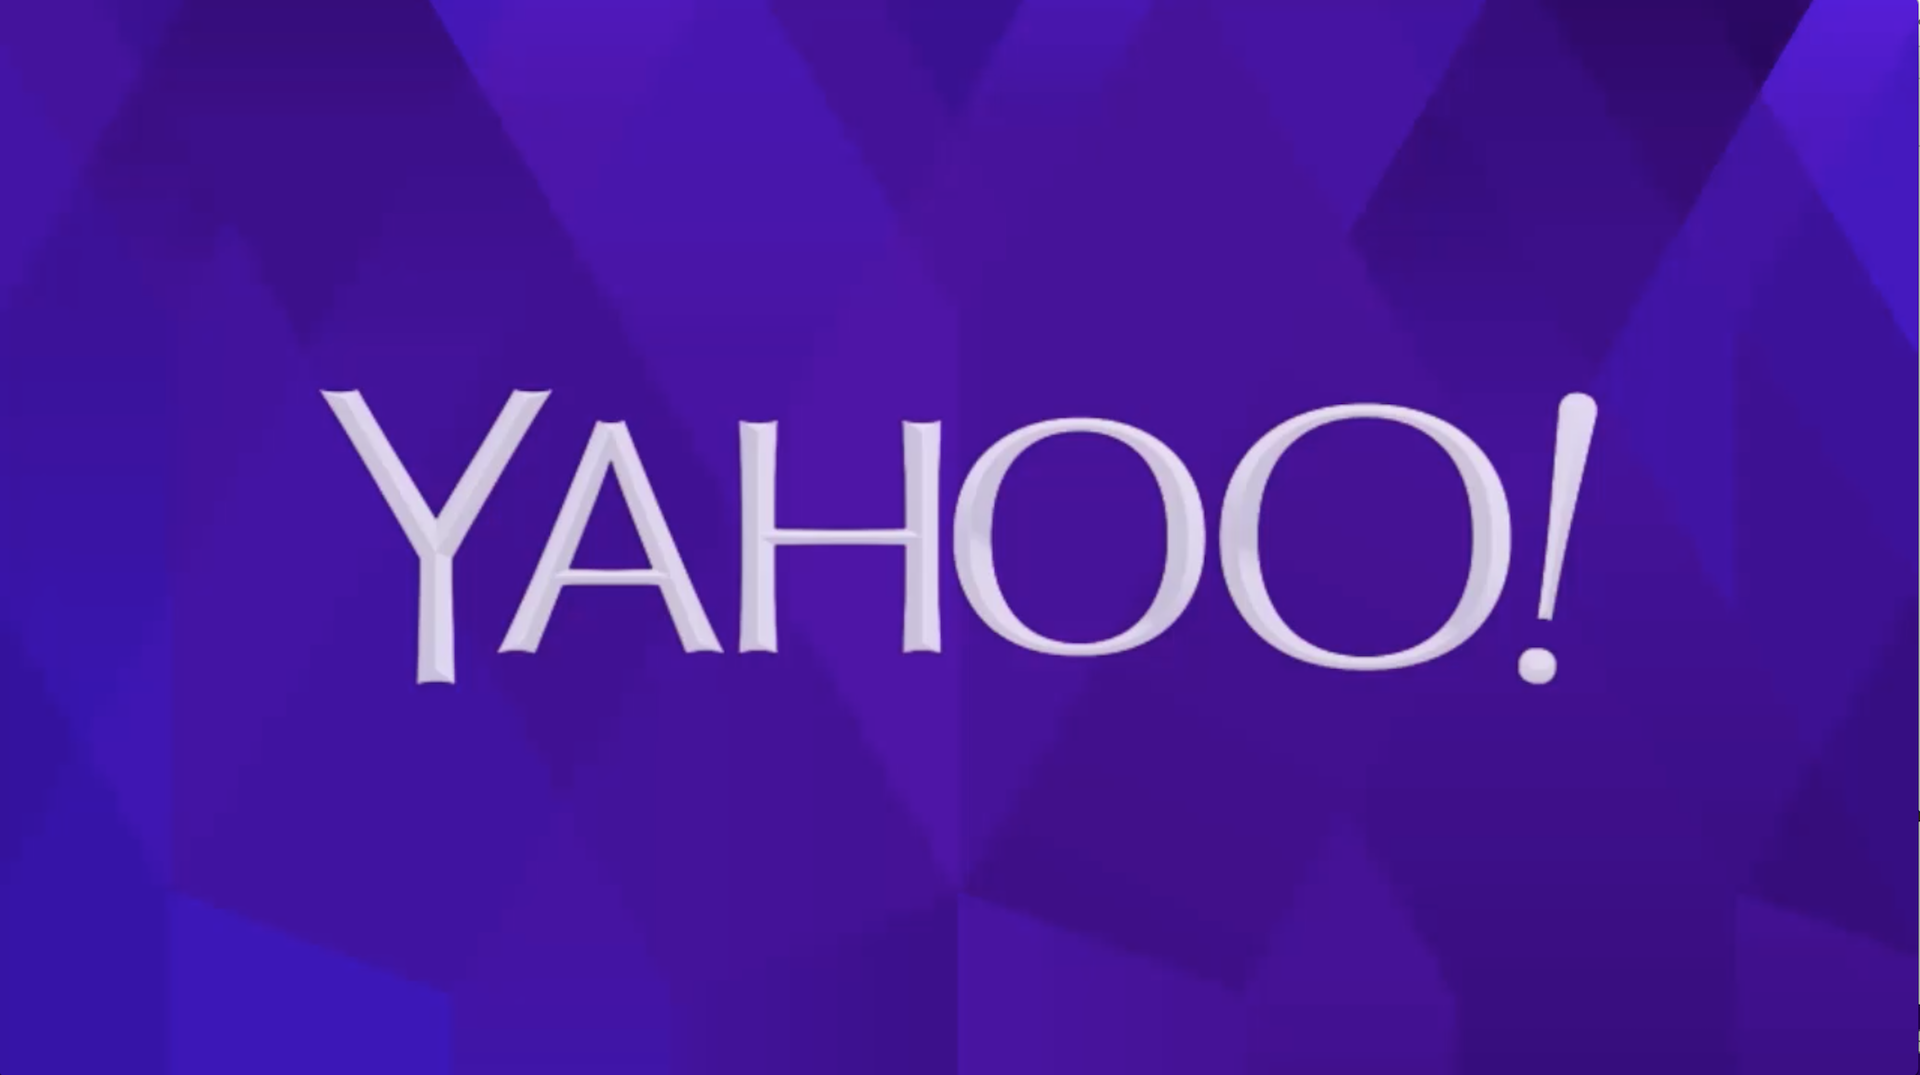 Yahoo Stock Quote Enchanting Stocks Pop As Syria Escalation Fears Wane  Syria Inspiration Design